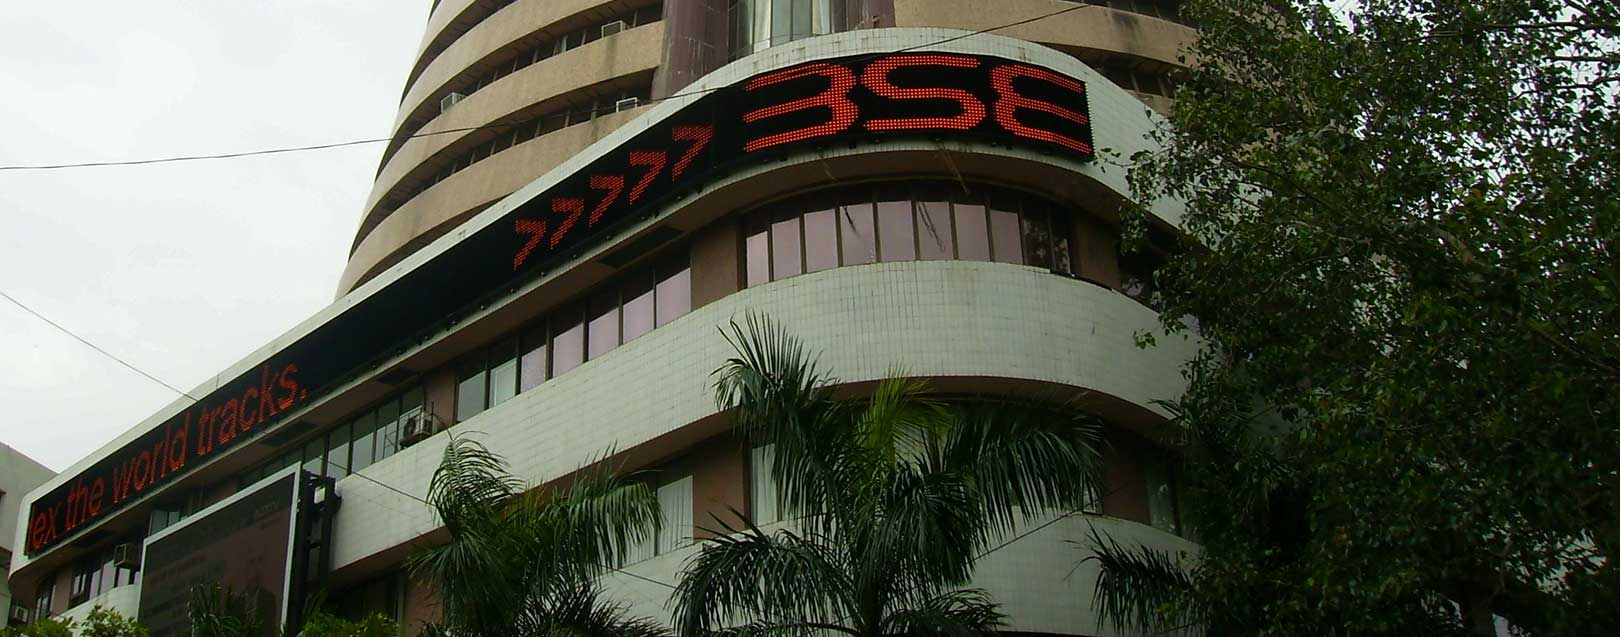 Sensex, Nifty ride high on firm global cues